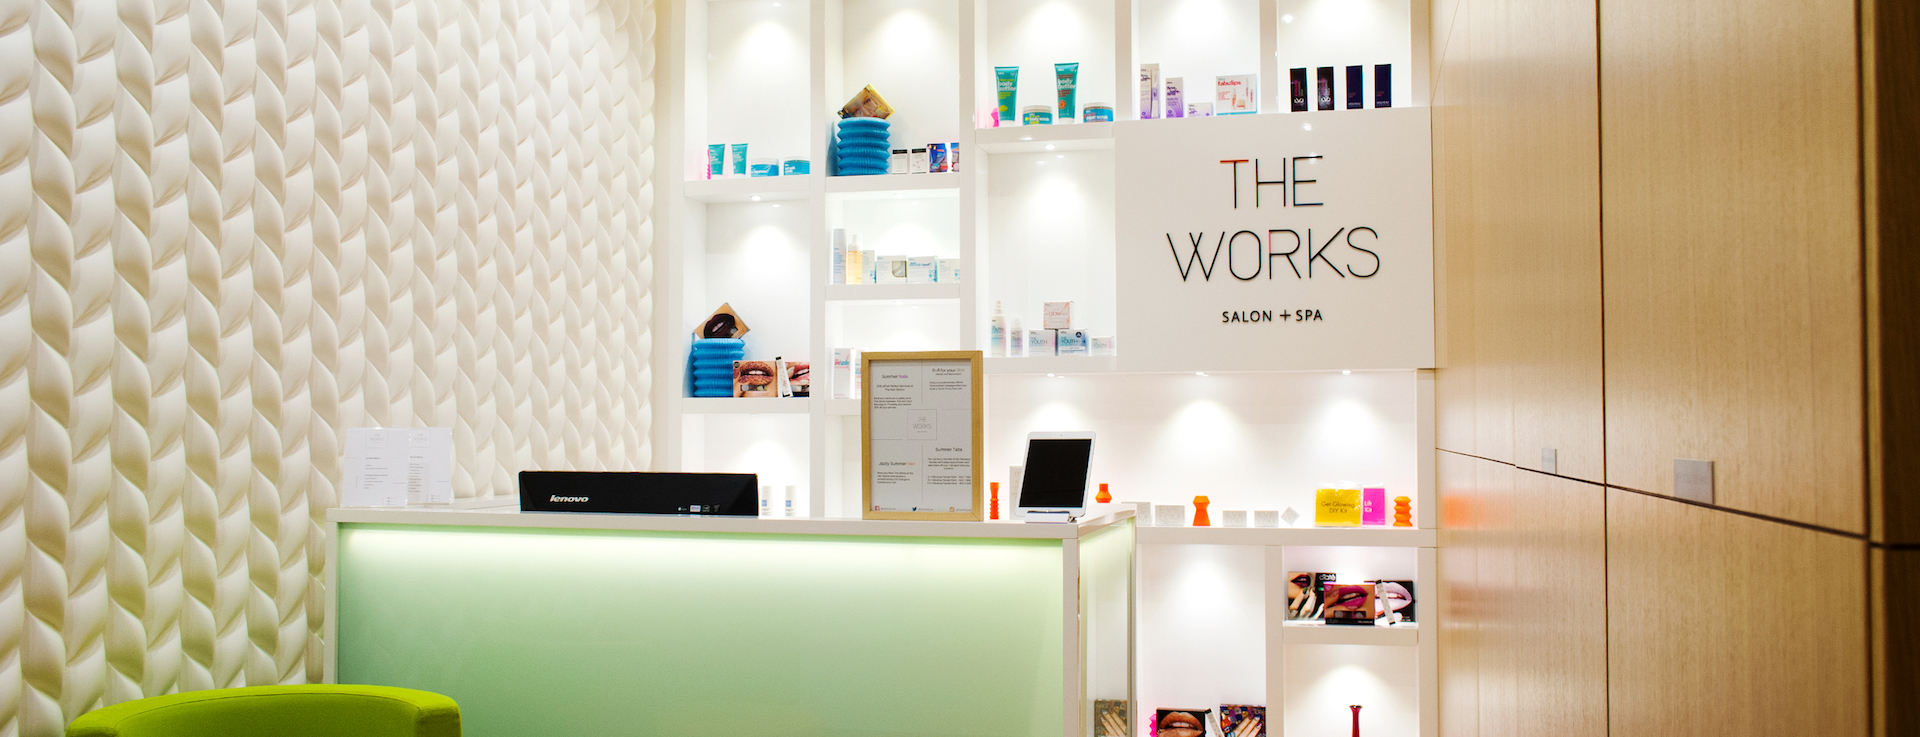 The Works Salon + Spa Dubai Media City